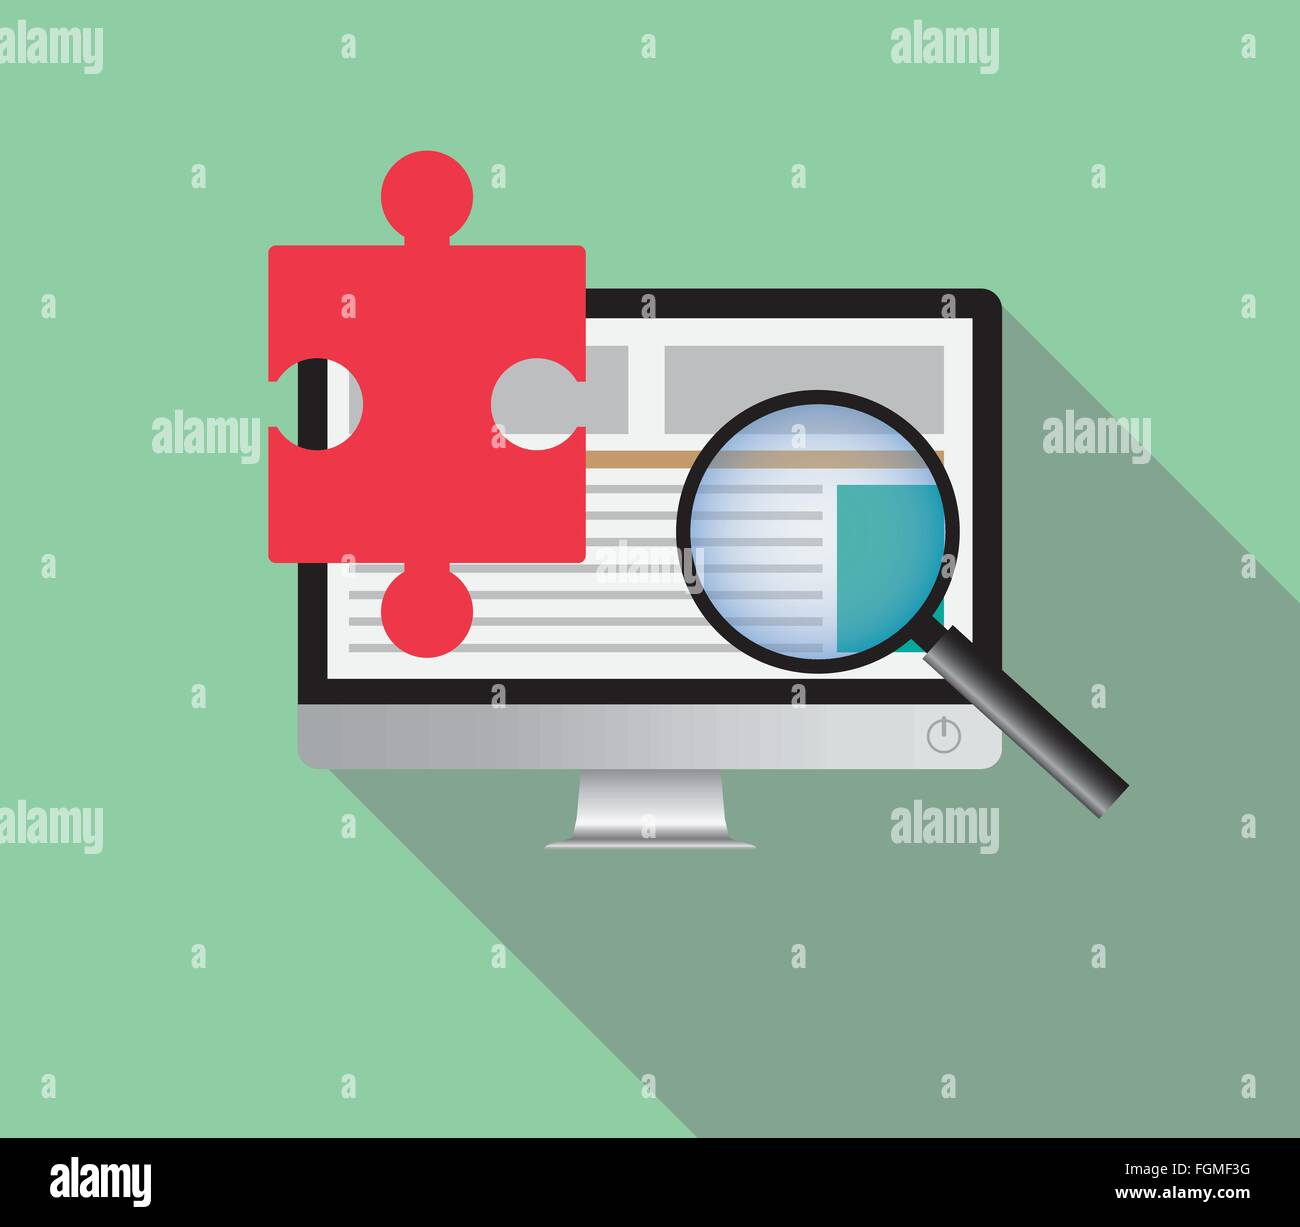 search solution via online browsing browse internet in a computer Stock Vector